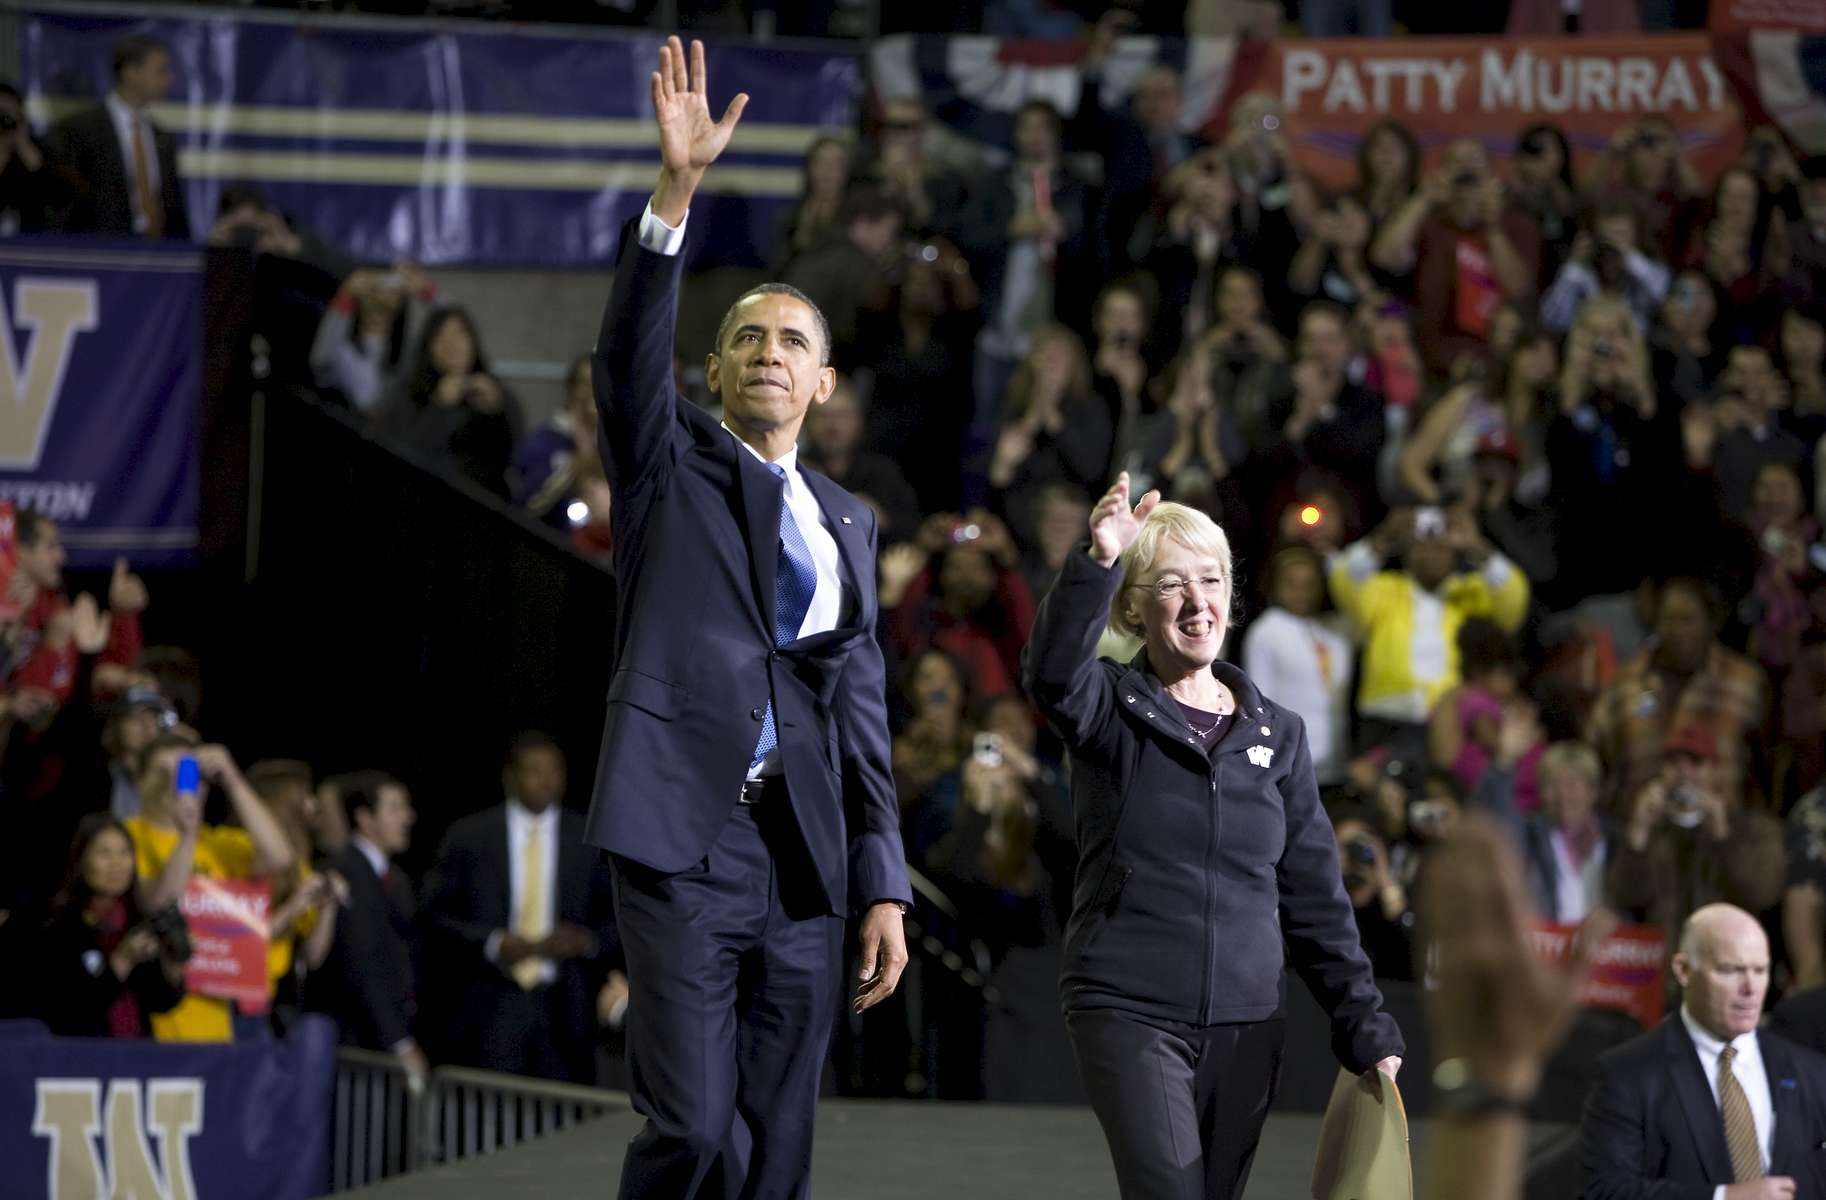 SEATTLE, WA - OCT 21: President Barack Obama campaigns for Senator Patty Murray at Hec Edmundson Pavillion on the University of Washington campus on Oct 22, 2010. Photo by Ron Wurzer